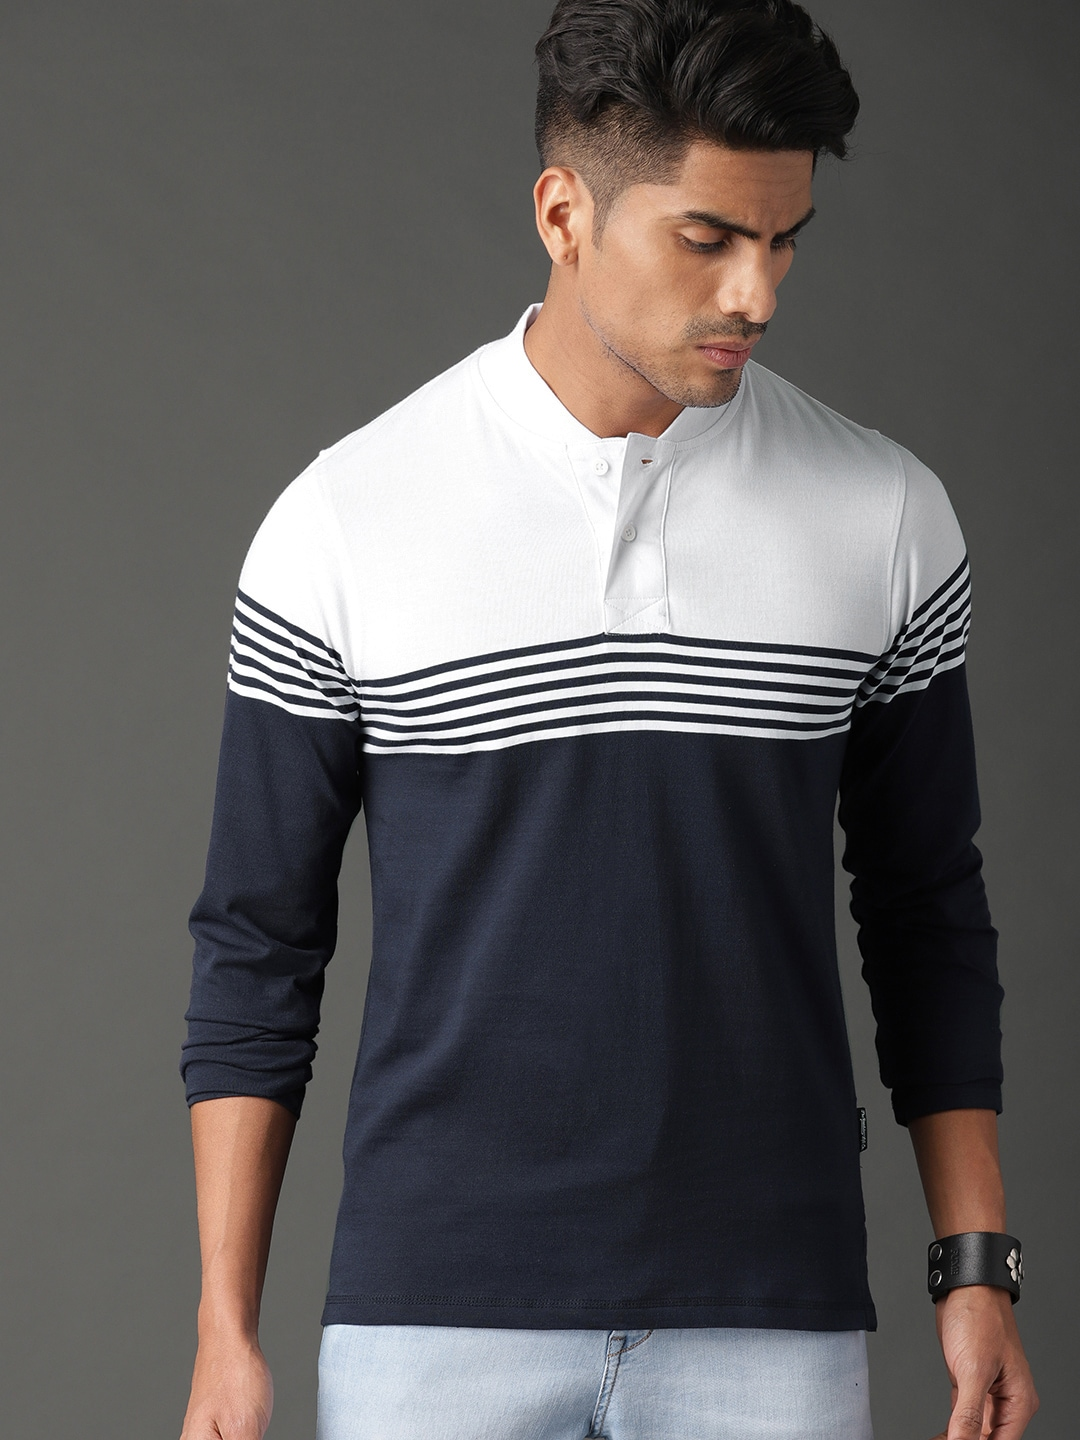 apparel men roadster shirts buy apparel men roadster shirts onlineapparel men roadster shirts buy apparel men roadster shirts online in india